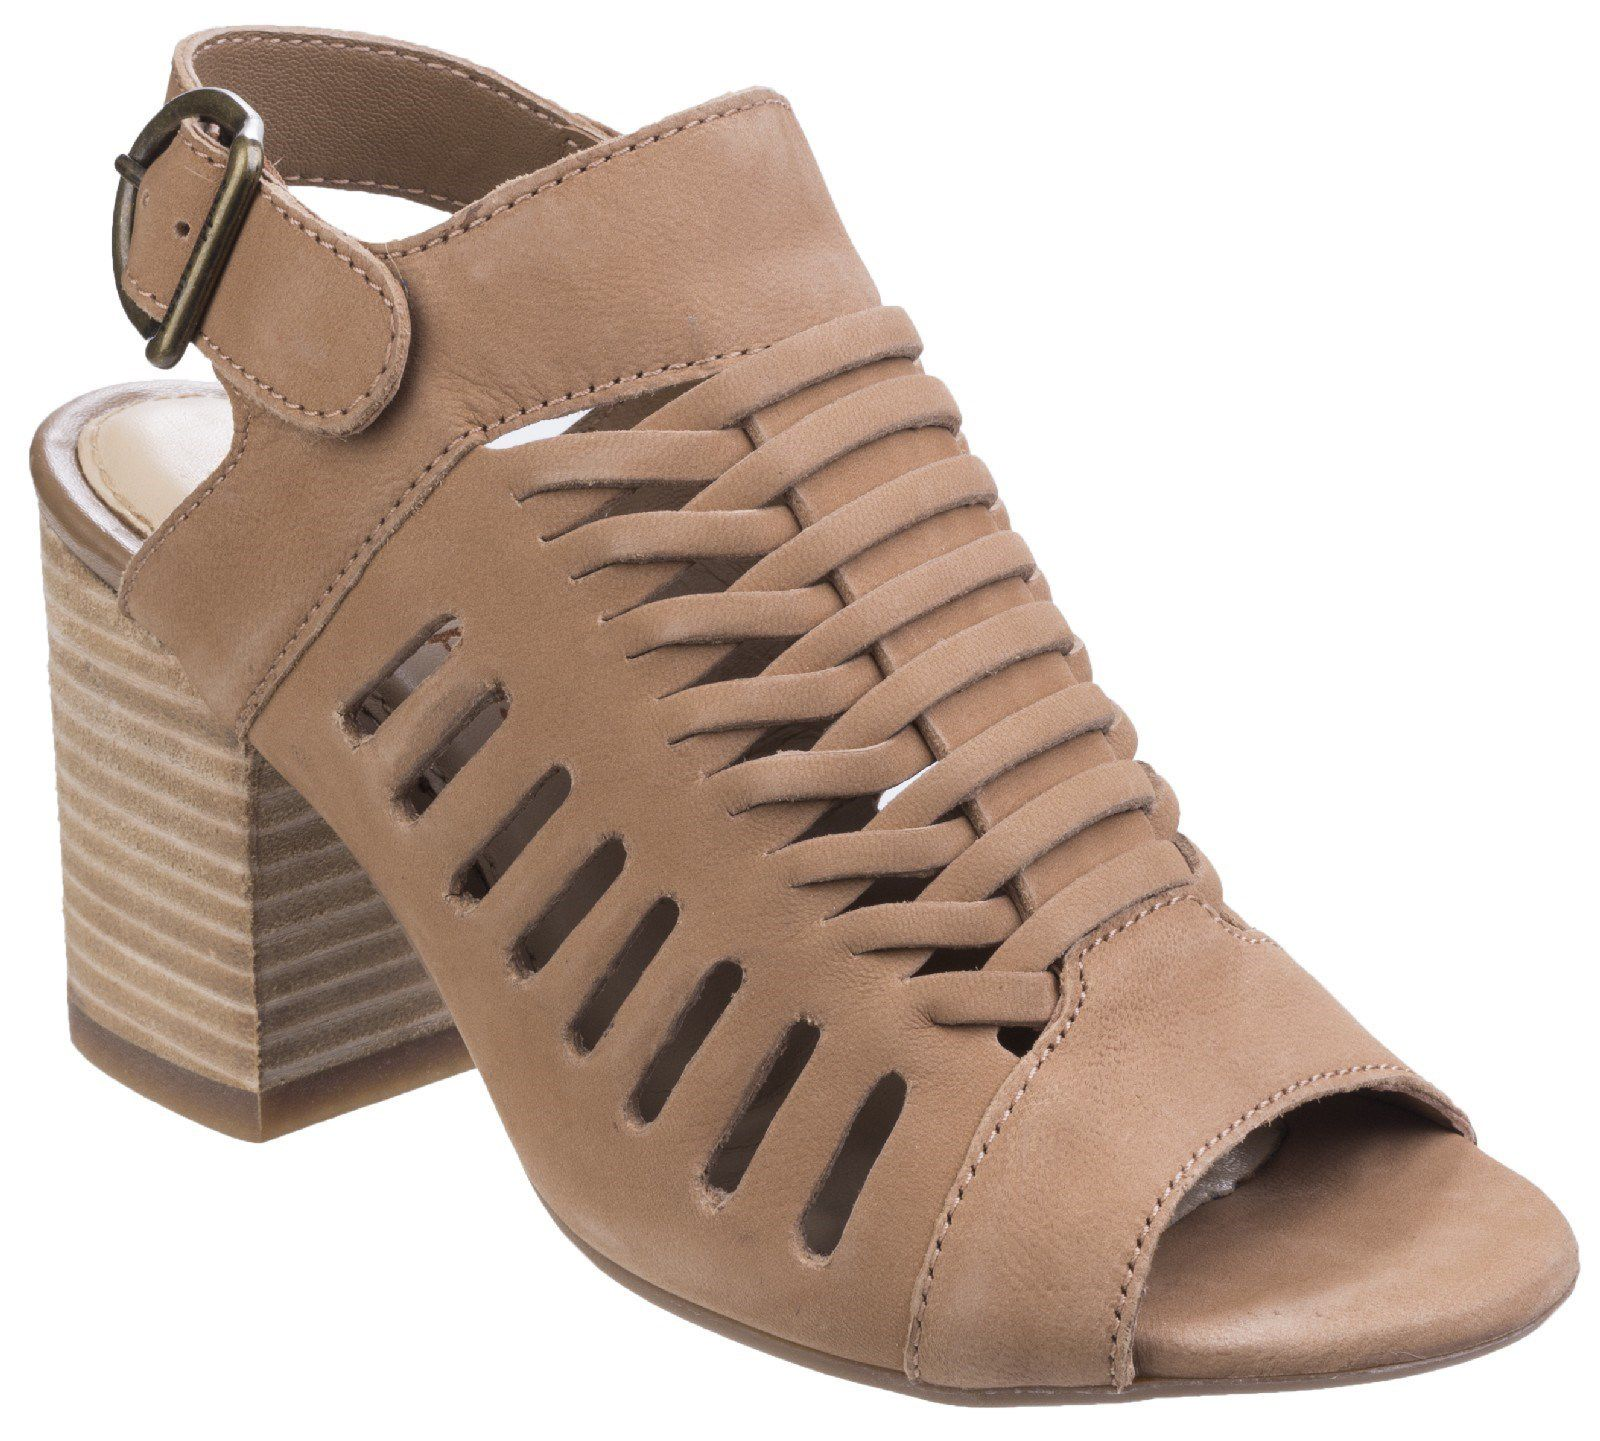 Hush Puppies Sidra malia heeled sandals Beige